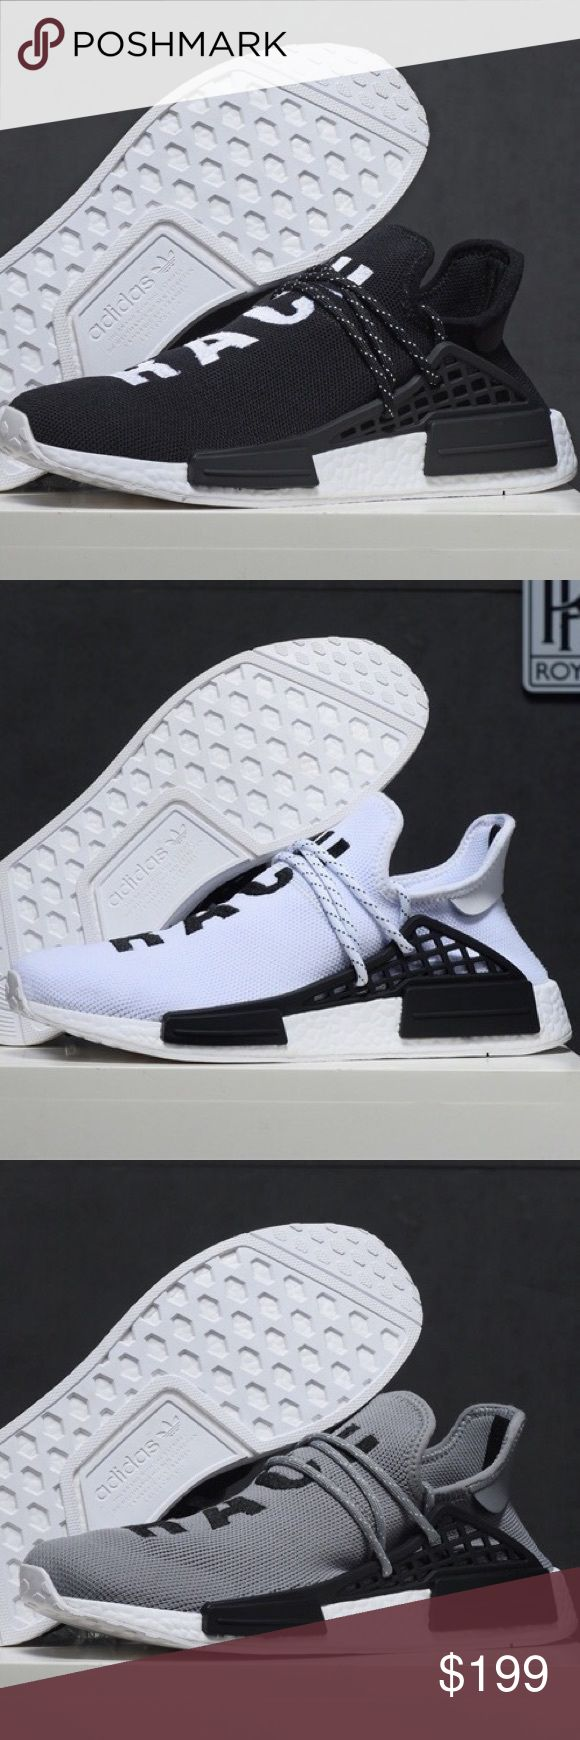 Adidas NMD Human Race fashion sneaker shoes New, comes with box. I don't reply any comment, Please contact me at:catinaholmessc@gmail.com ————————————————— Men mens womens women nike vans converse adidas puma roshe air max athletic sports white pink bl